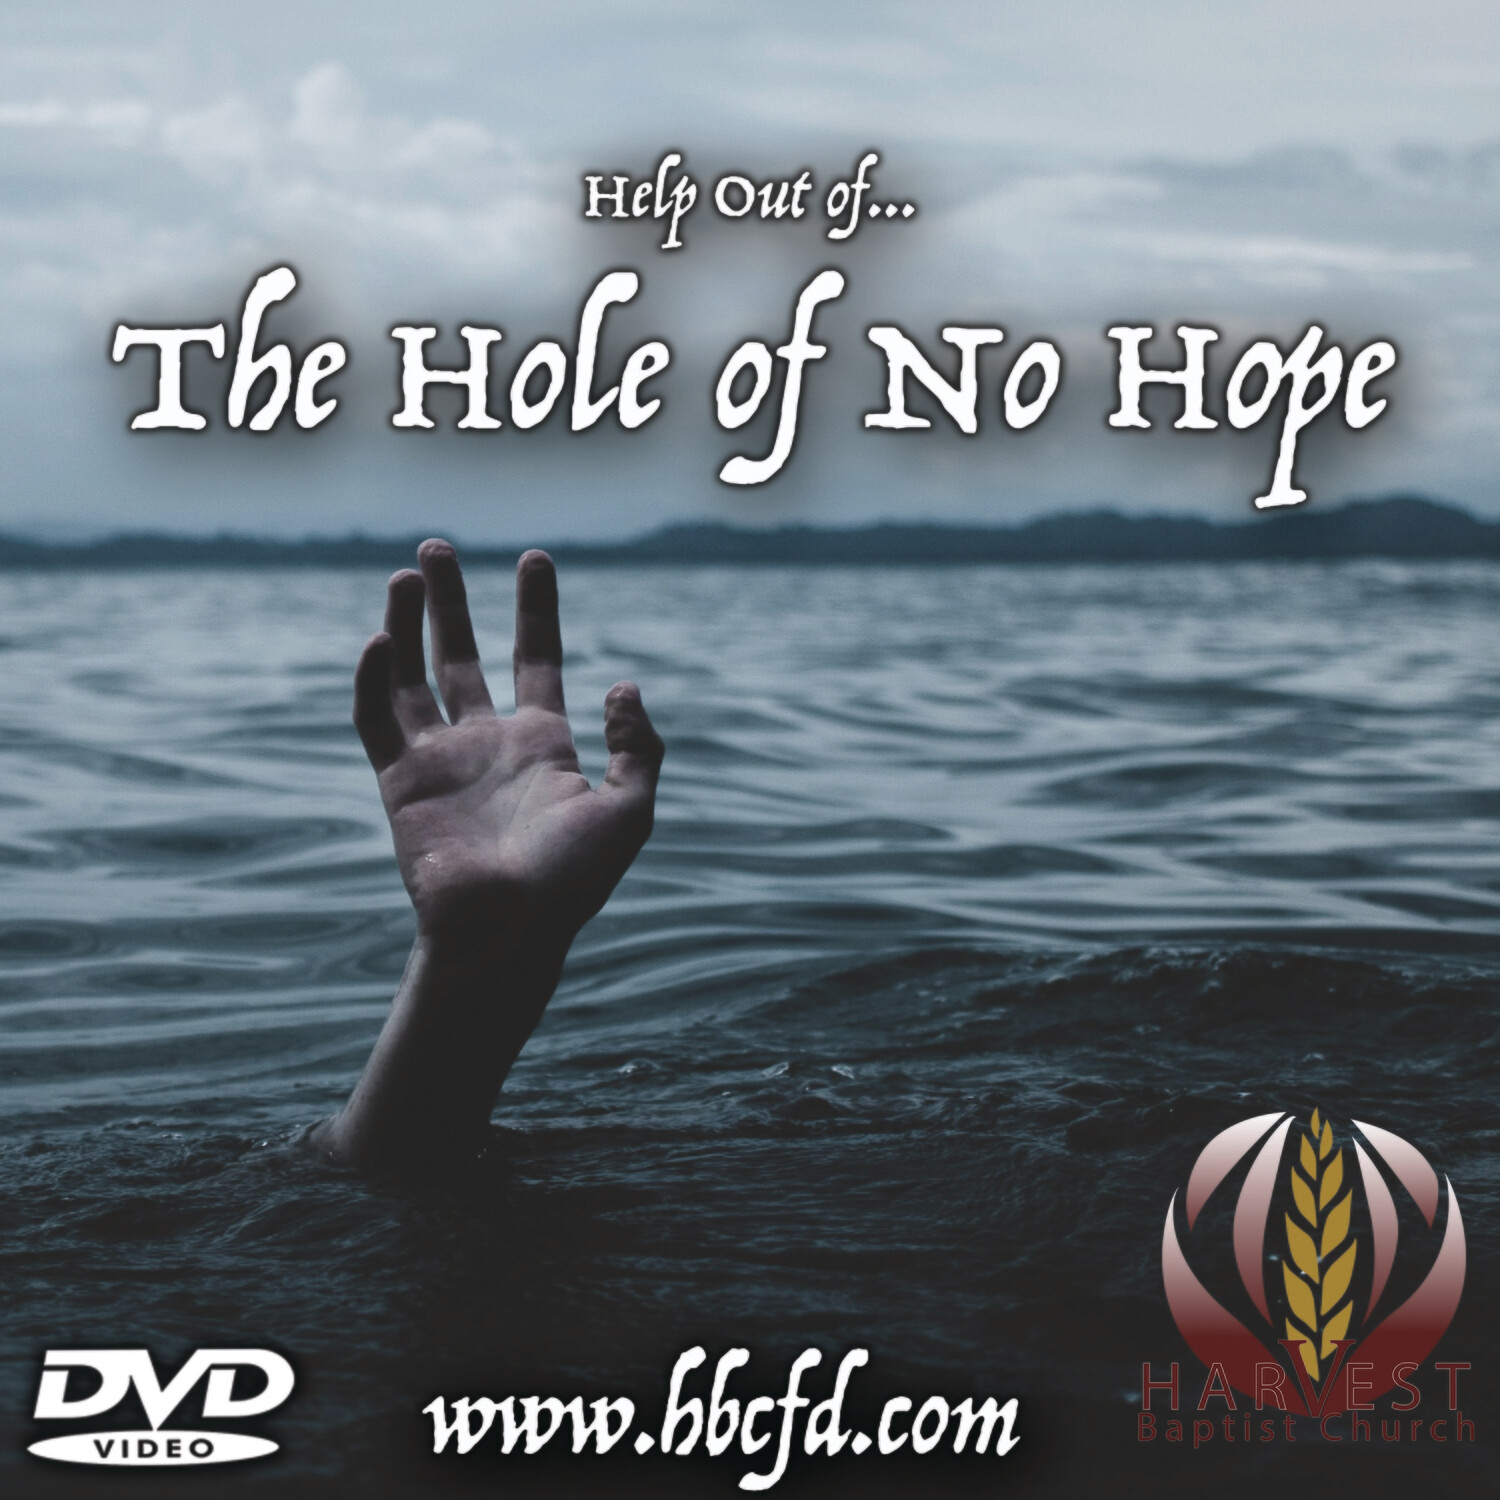 The Hole of No Hope